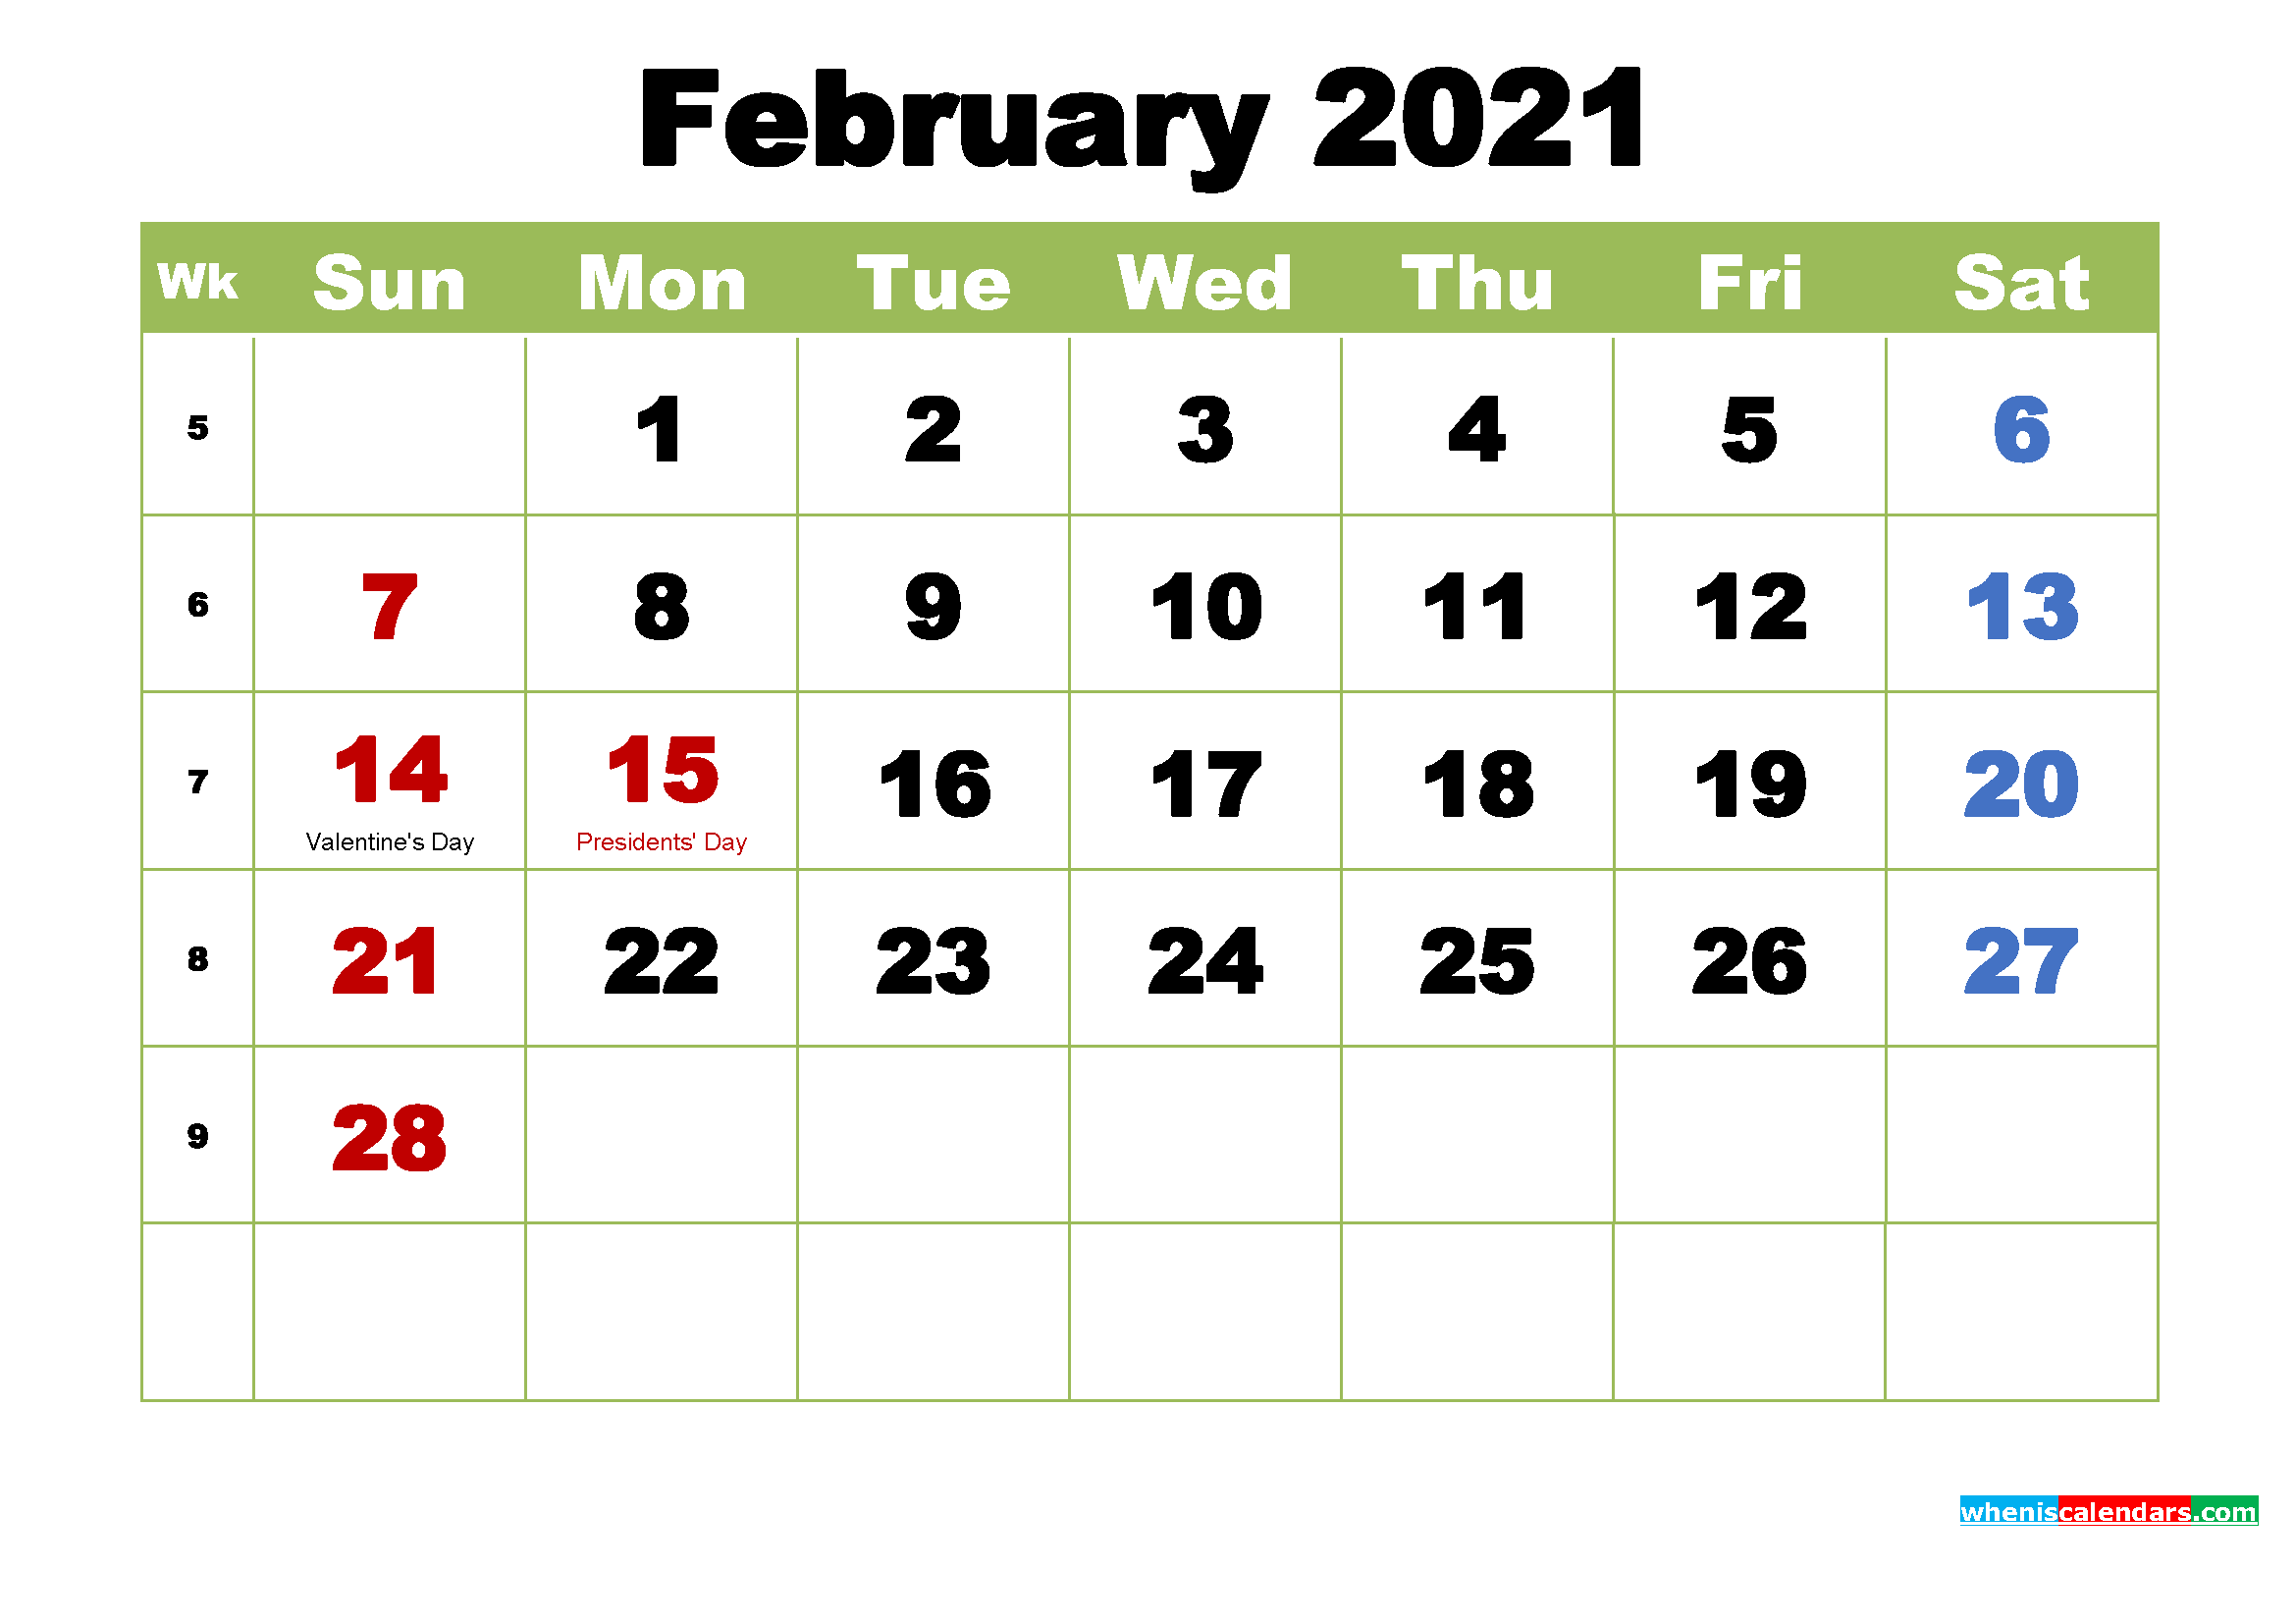 February 2021 Calendar with Holidays Wallpaper